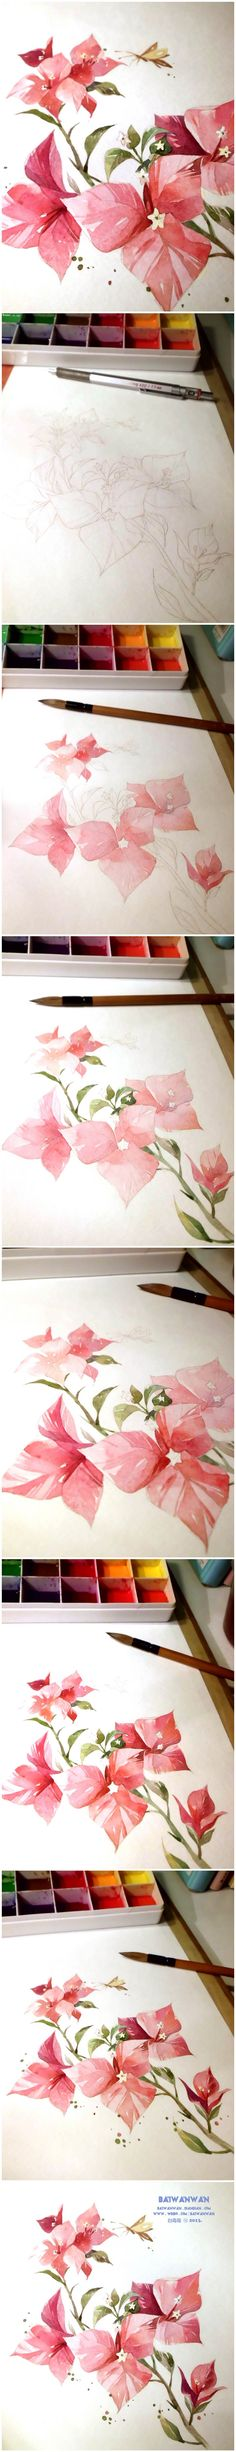 Watercolor or colored pencil flower